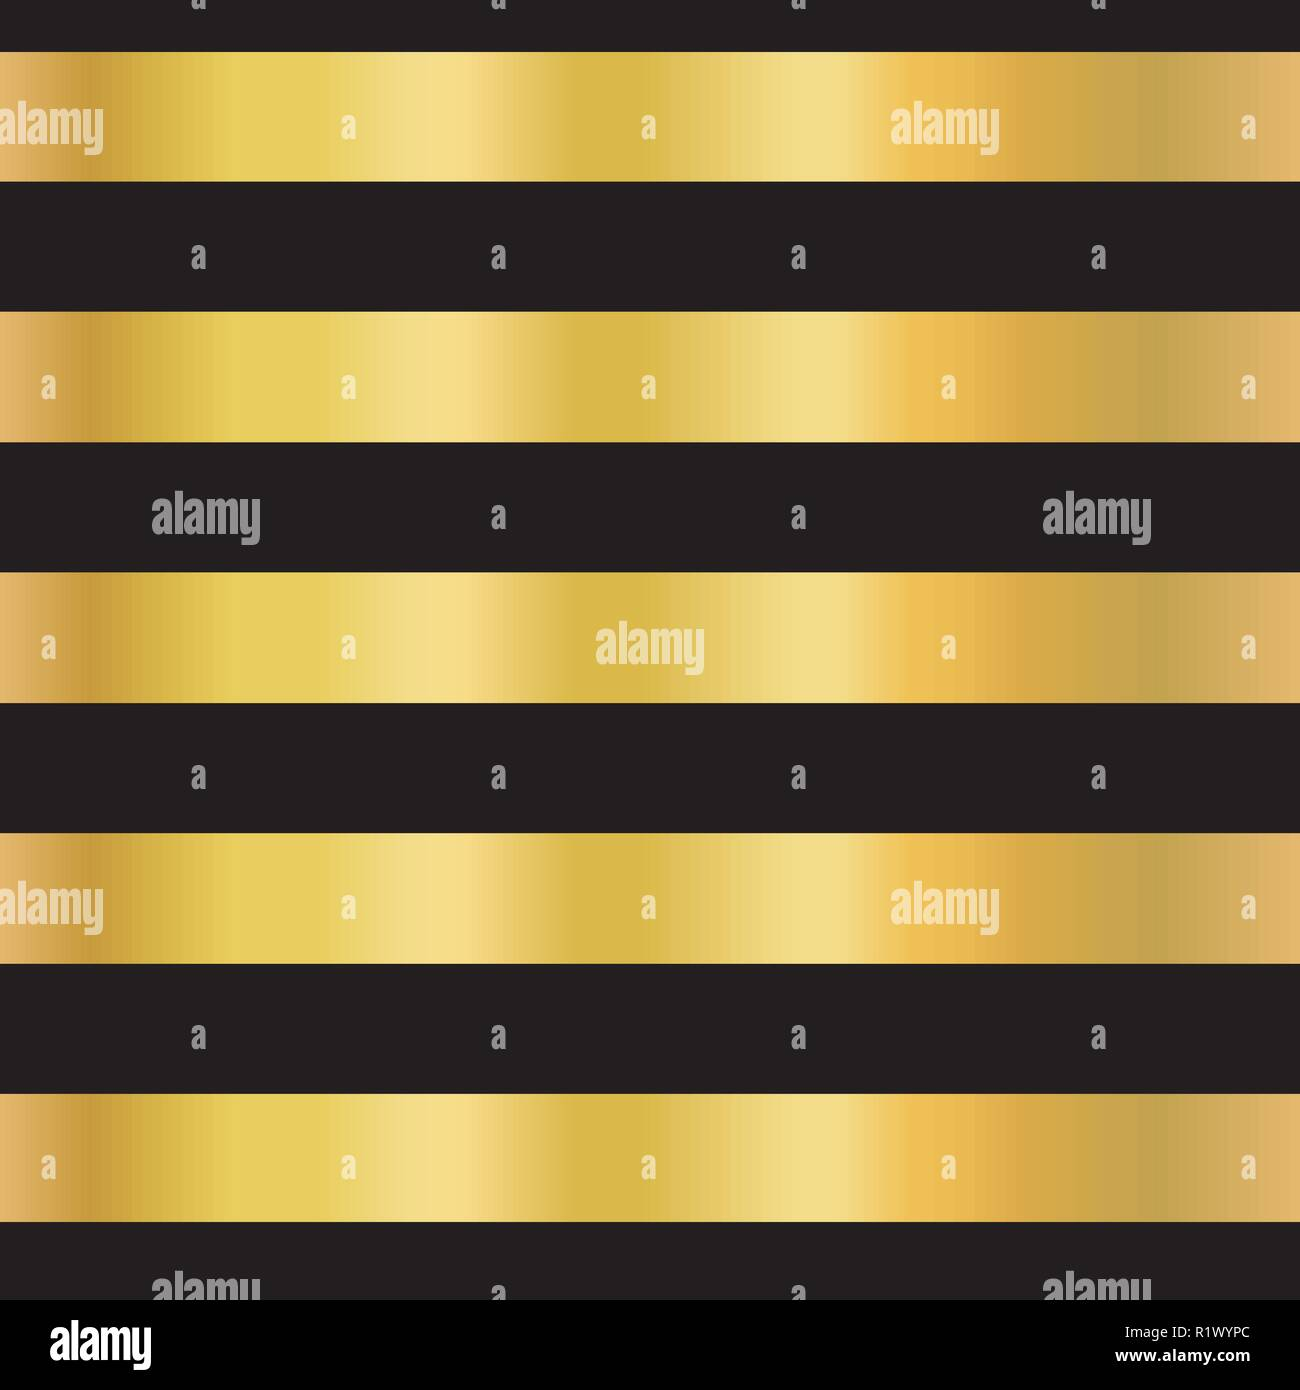 horizontal gold lines on black pattern elegant simple luxurious design for wallpaper scrap booking banner new year invitation birthday celebration